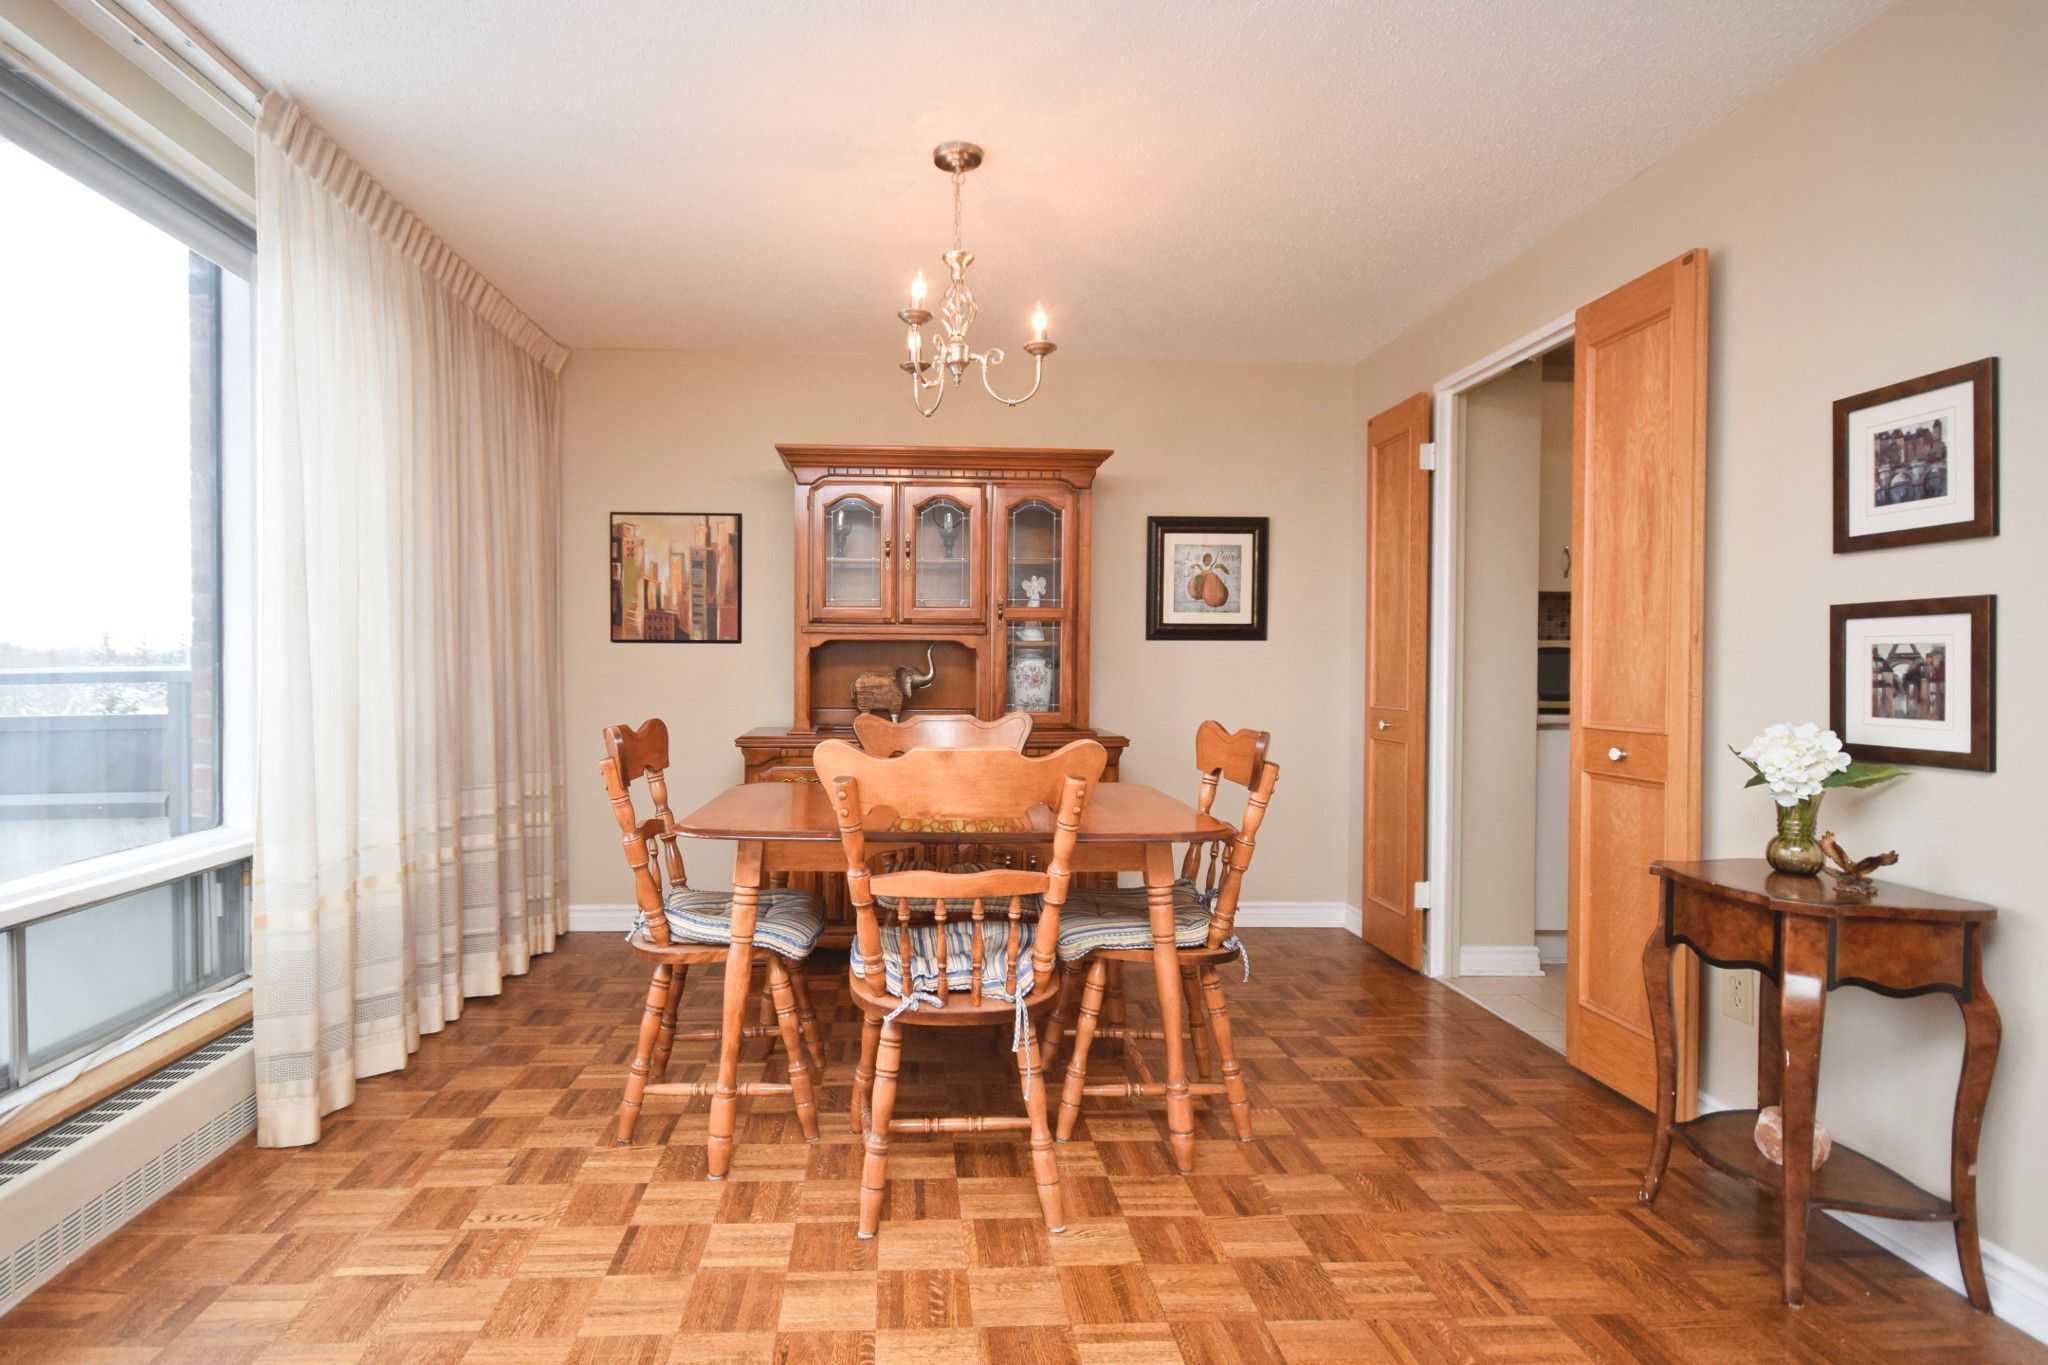 Photo 17: Photos: 515 1465 BASELINE Road in Ottawa: Copeland Park House for sale : MLS®# 1133550